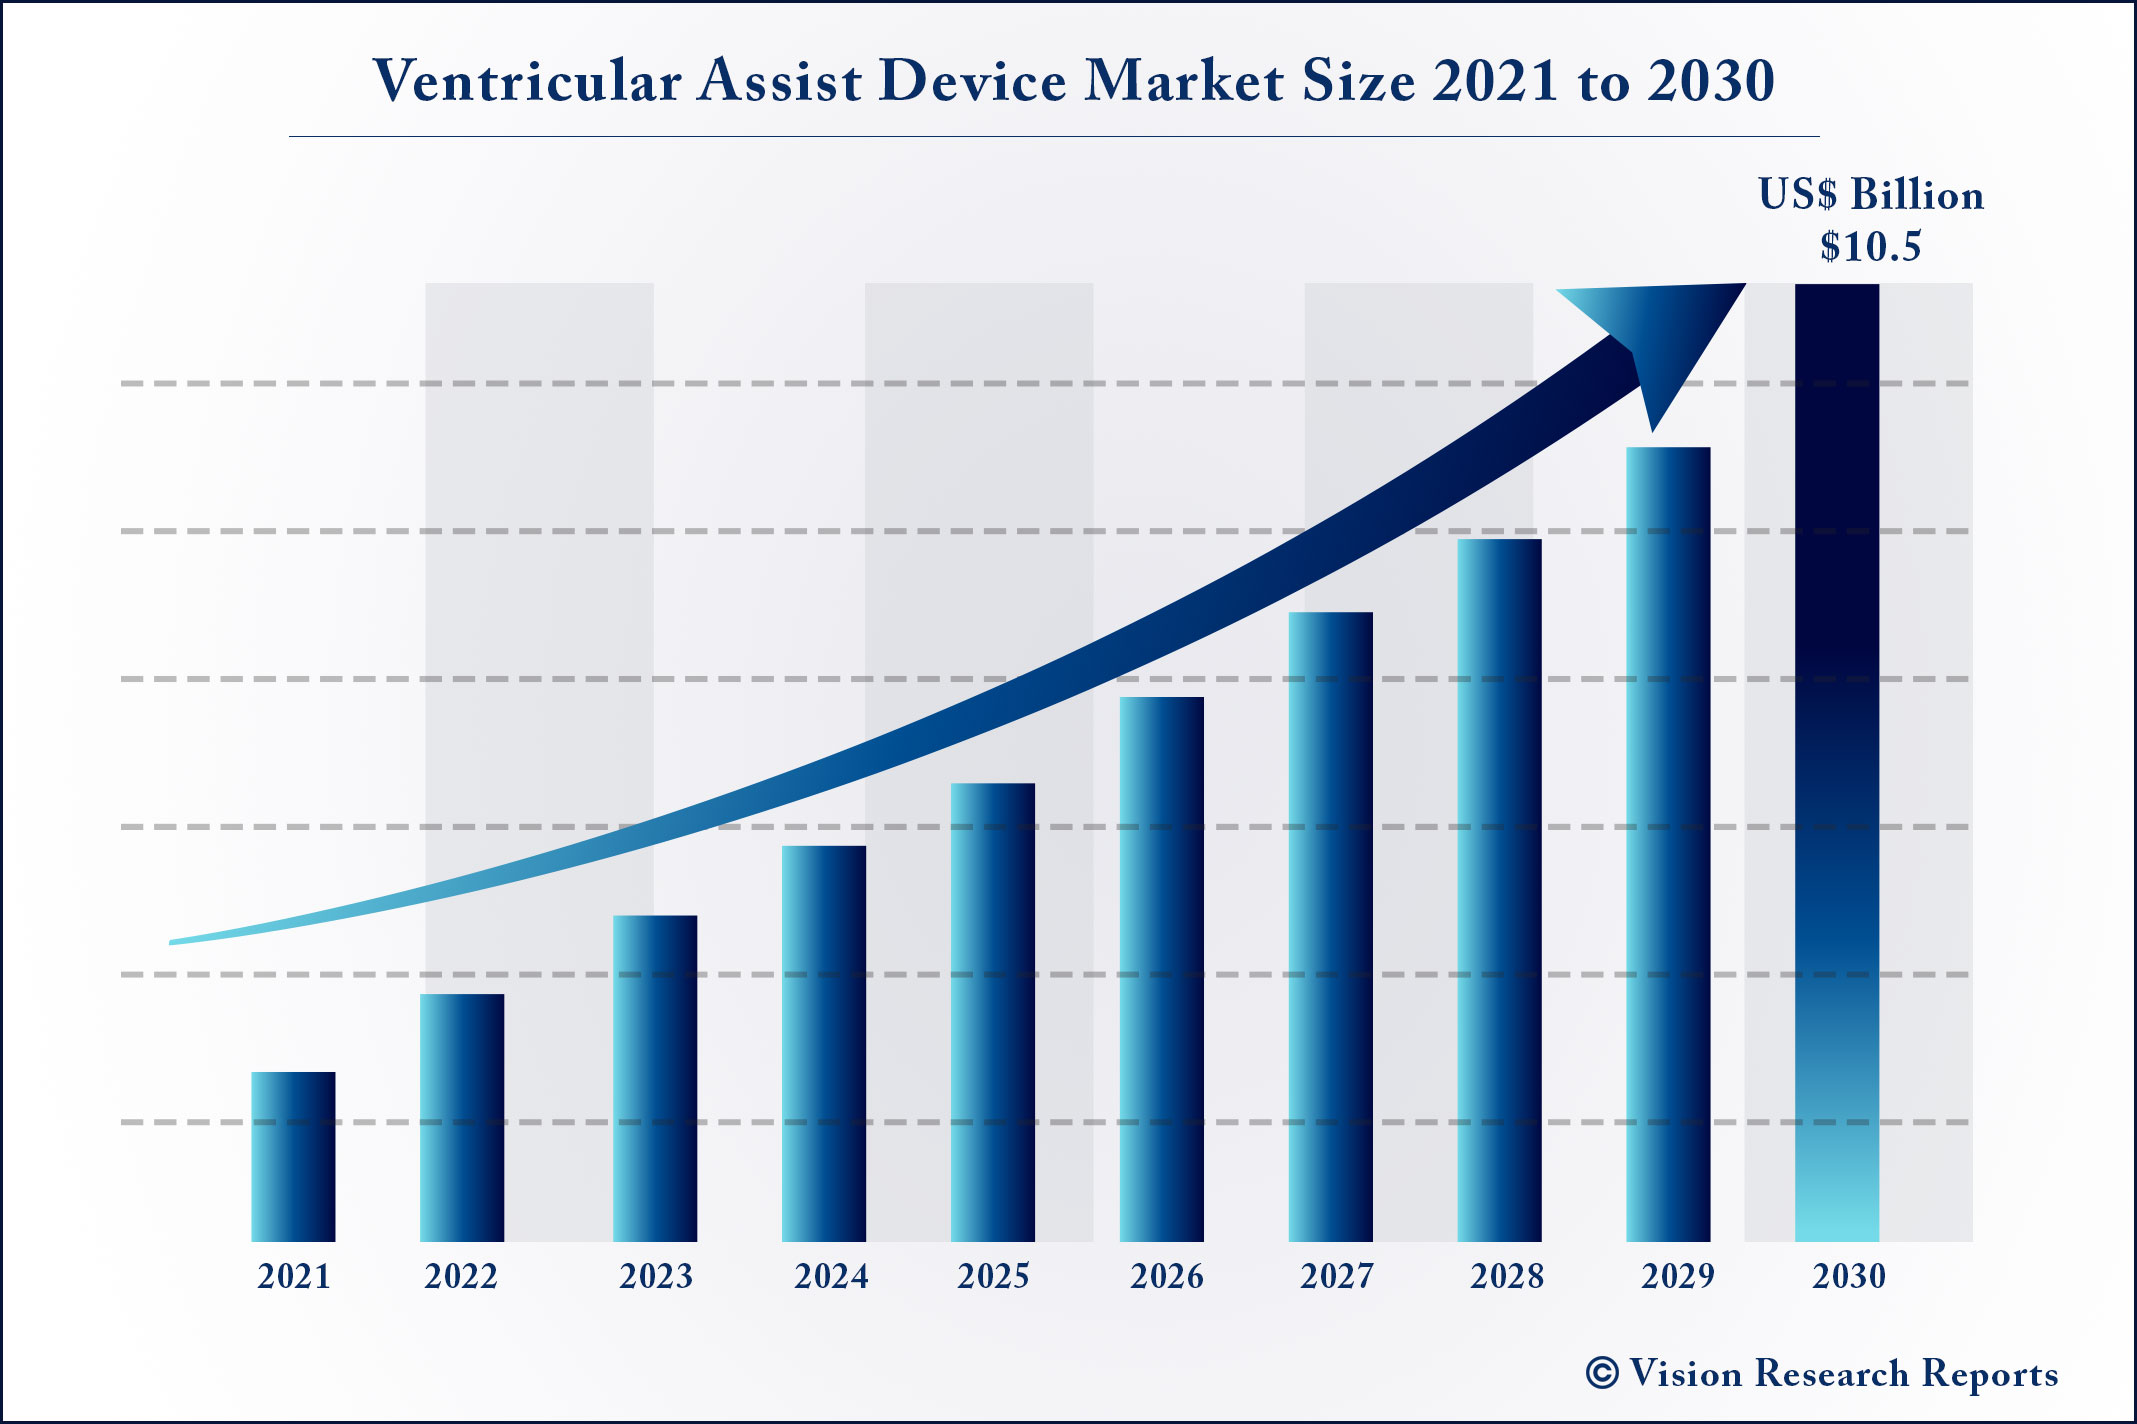 Ventricular Assist Device Market Size 2021 to 2030